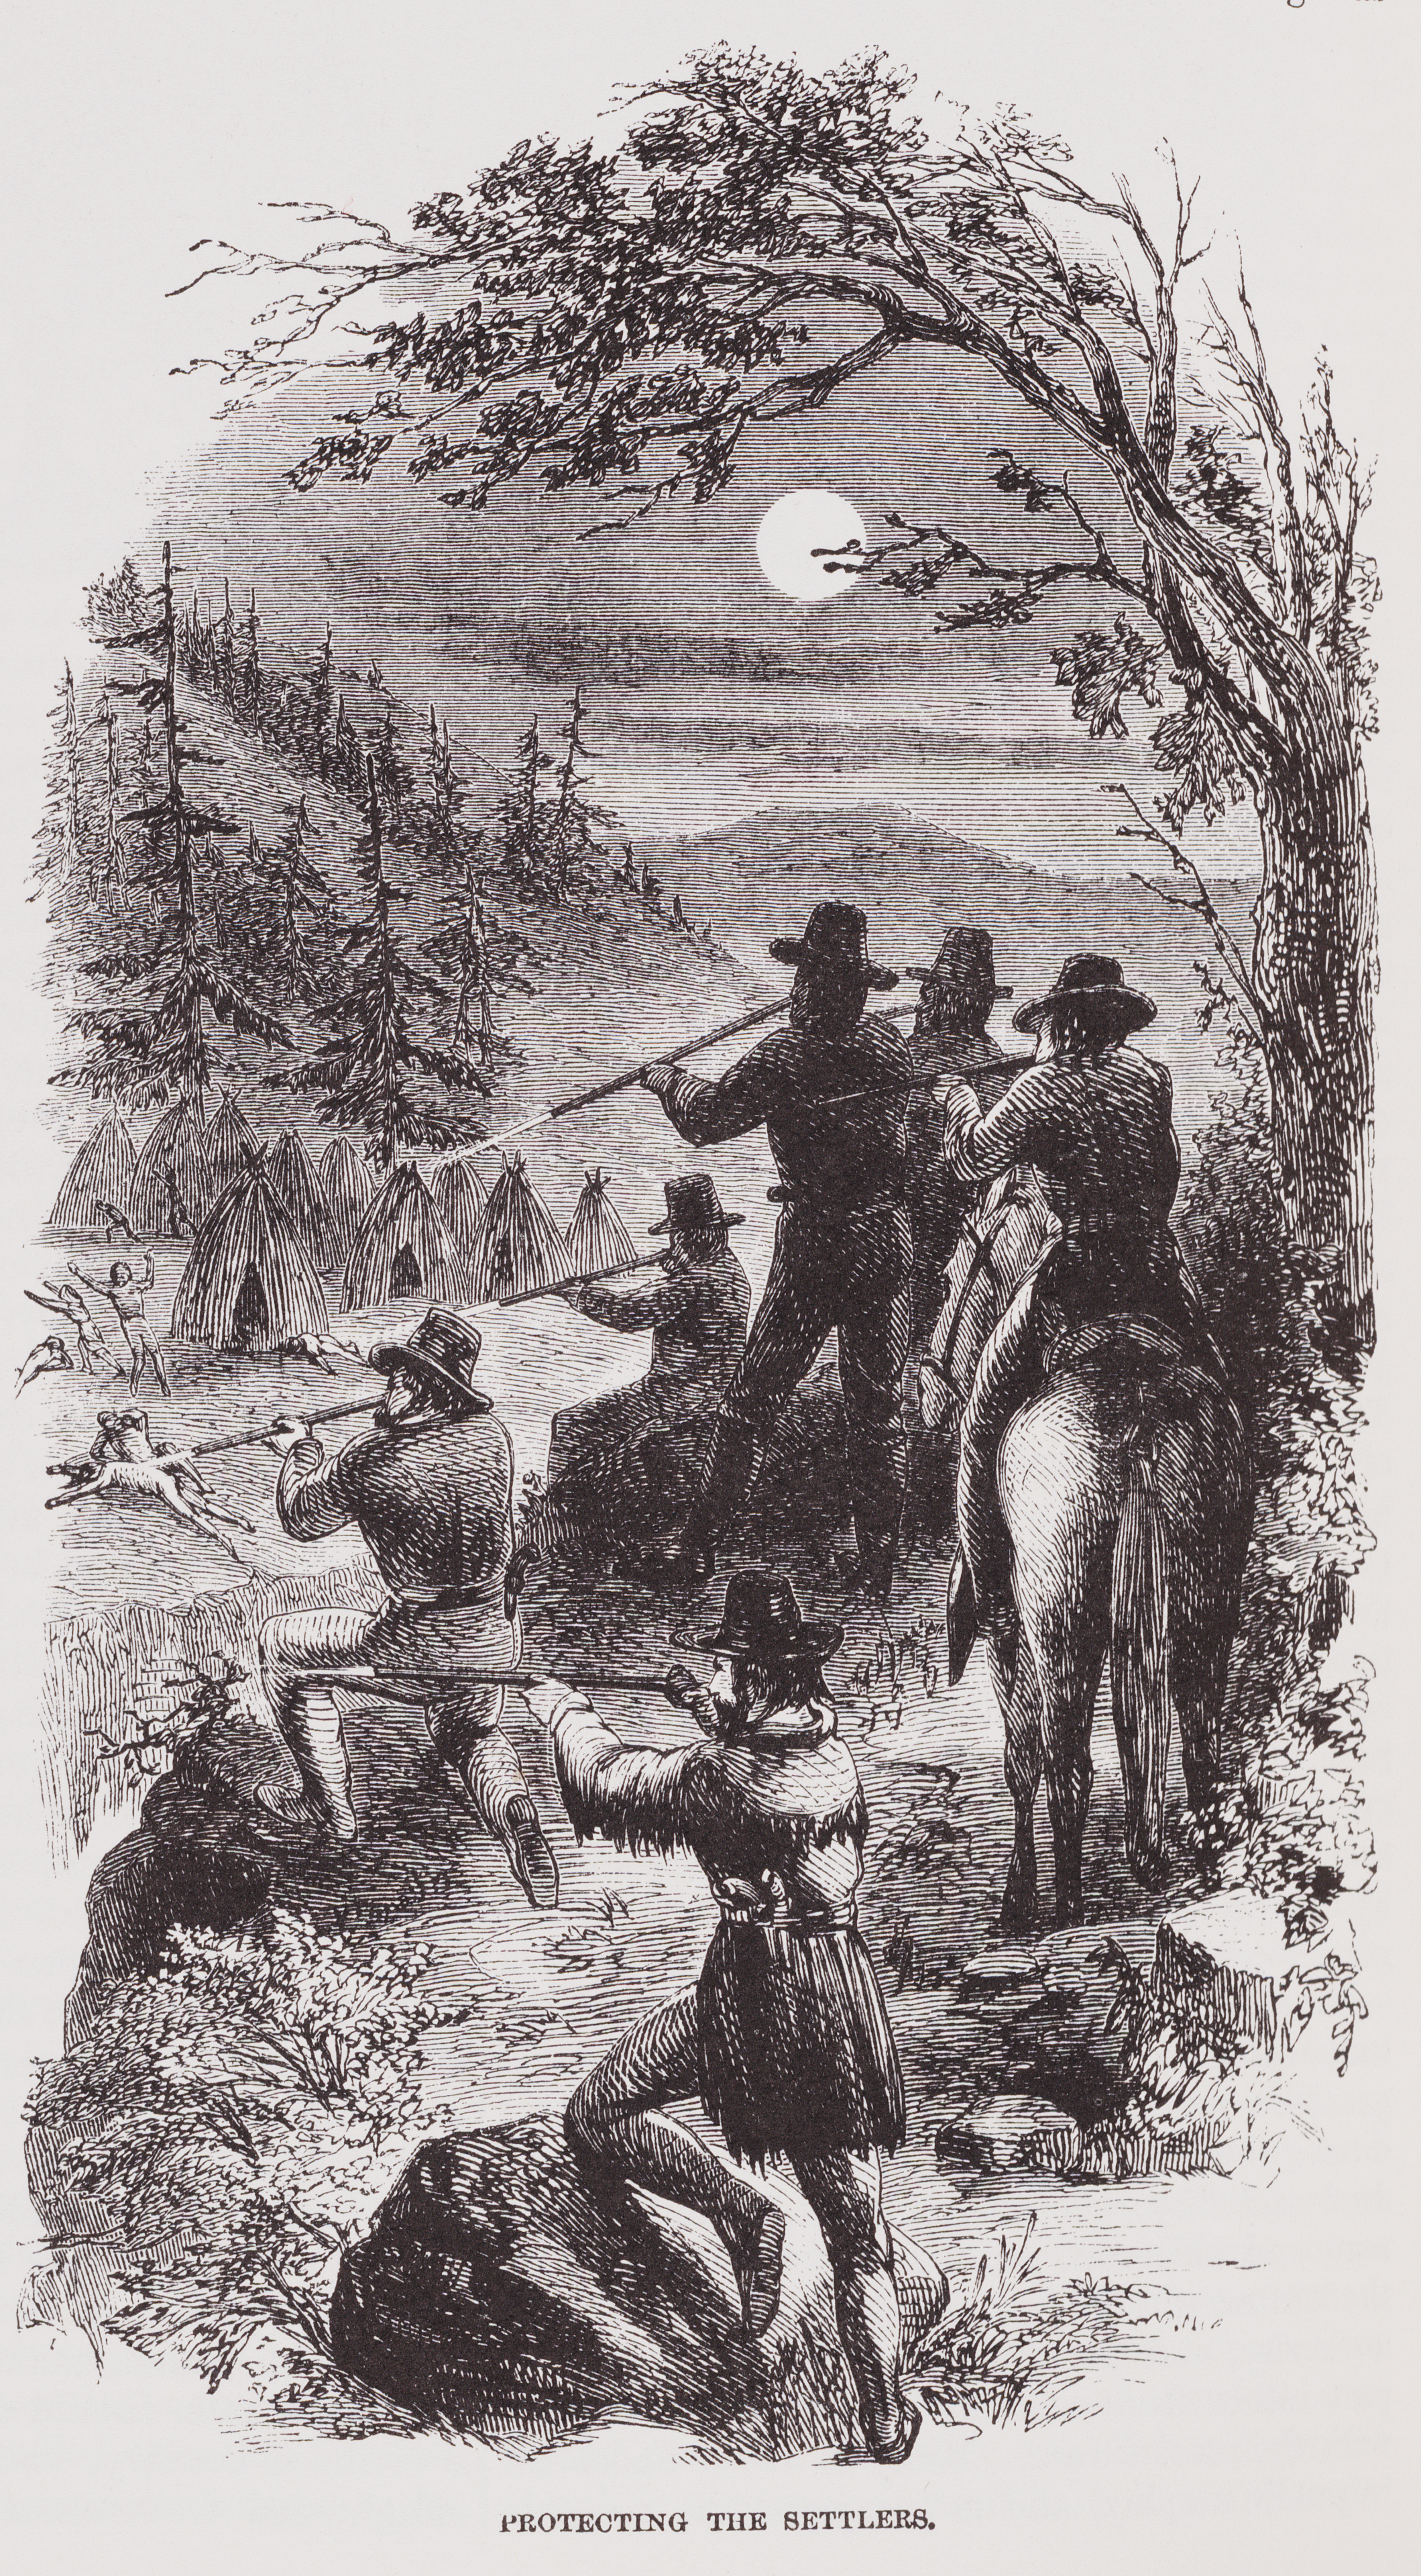 Illustration from American Genocide of men shooting people from atop a hill.